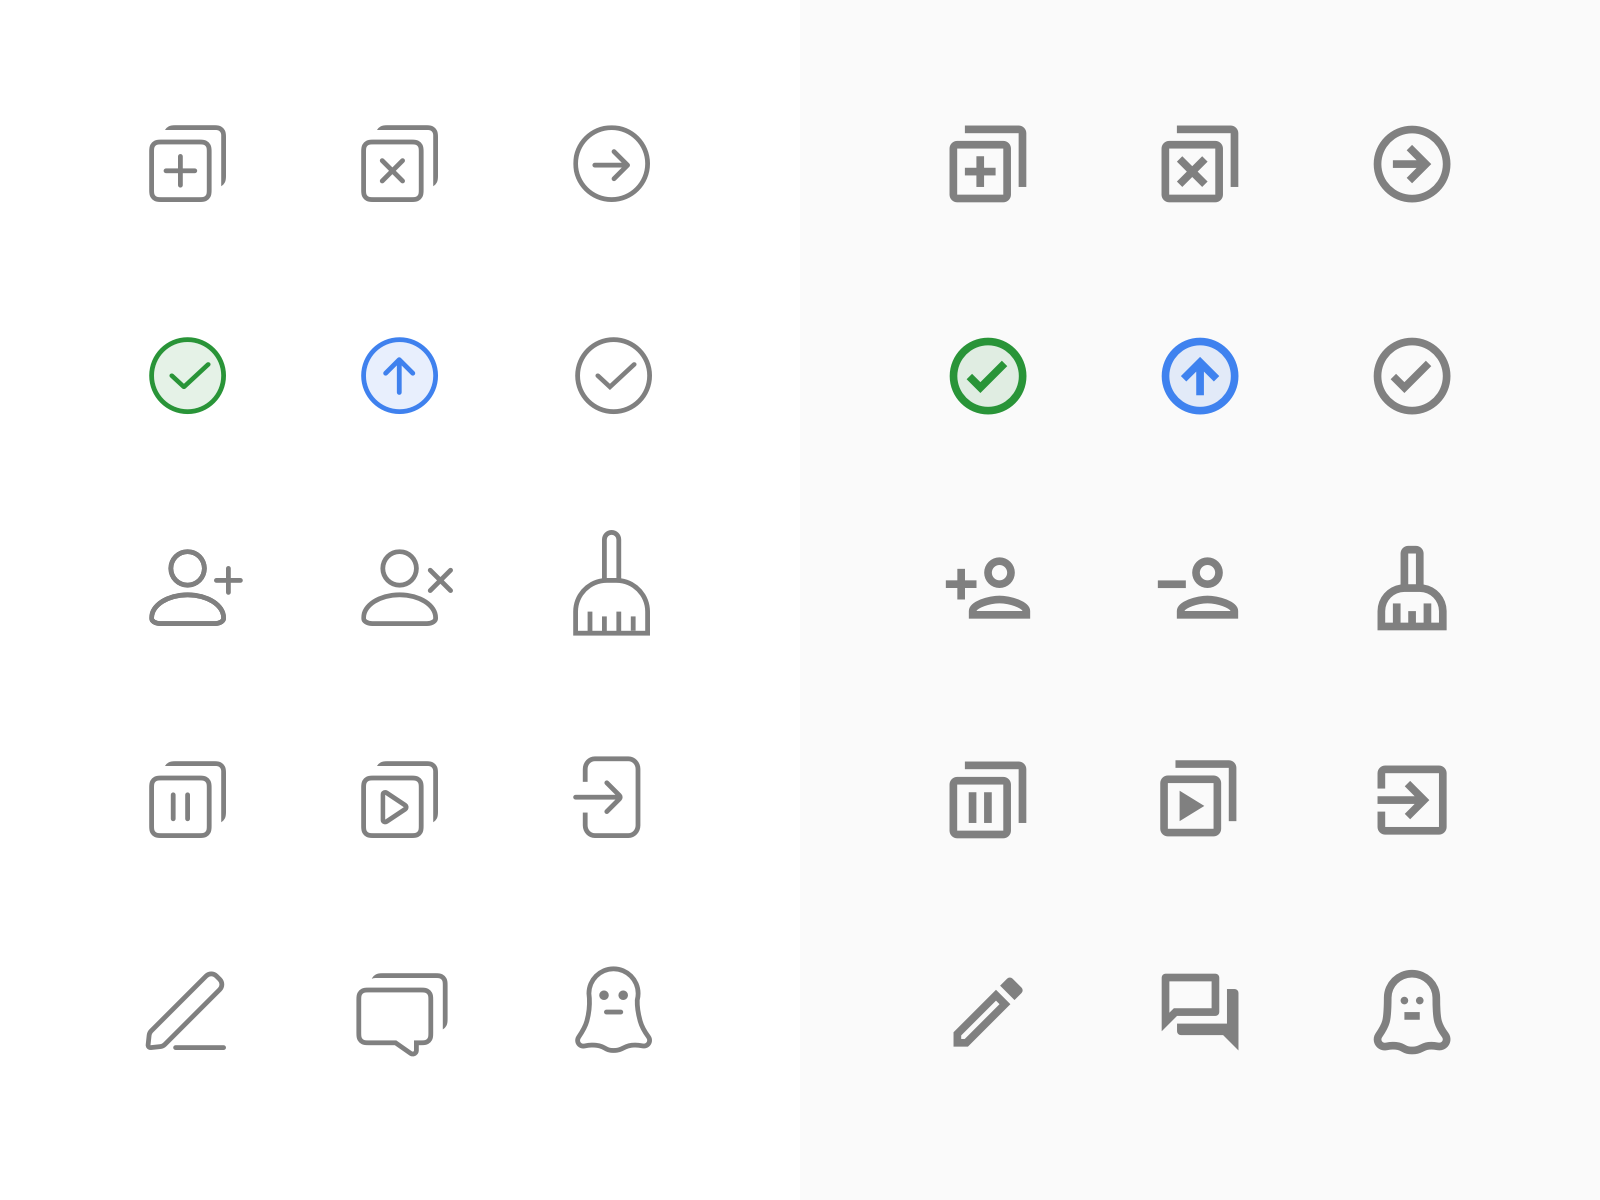 System message icons